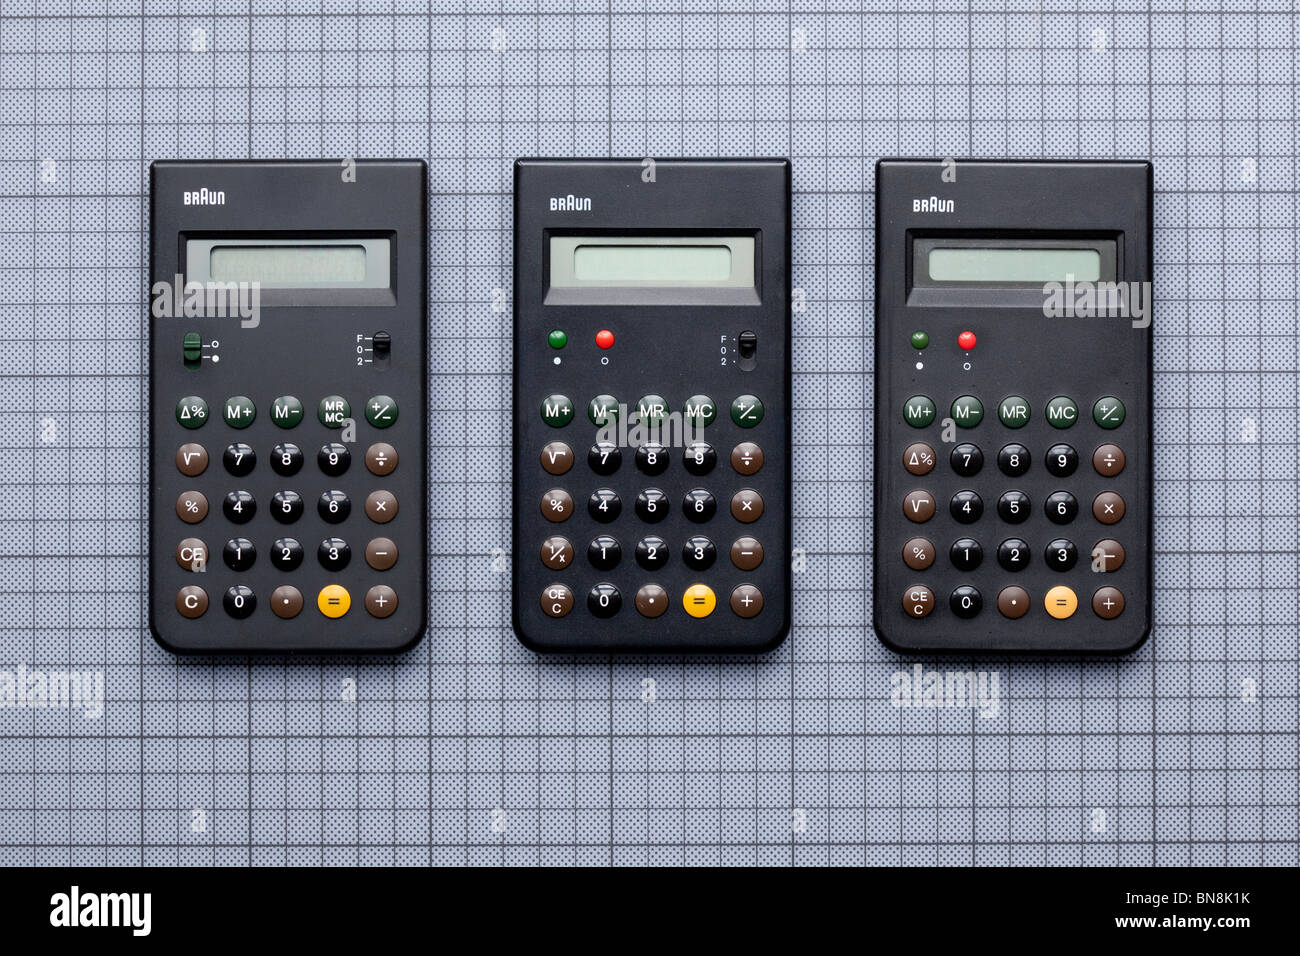 Three Braun calculators, ET33, ET55 and ET66, designed by Dieter Rams and Dietrich Lubs, 1977 - 1987. and inspiration - Stock Image